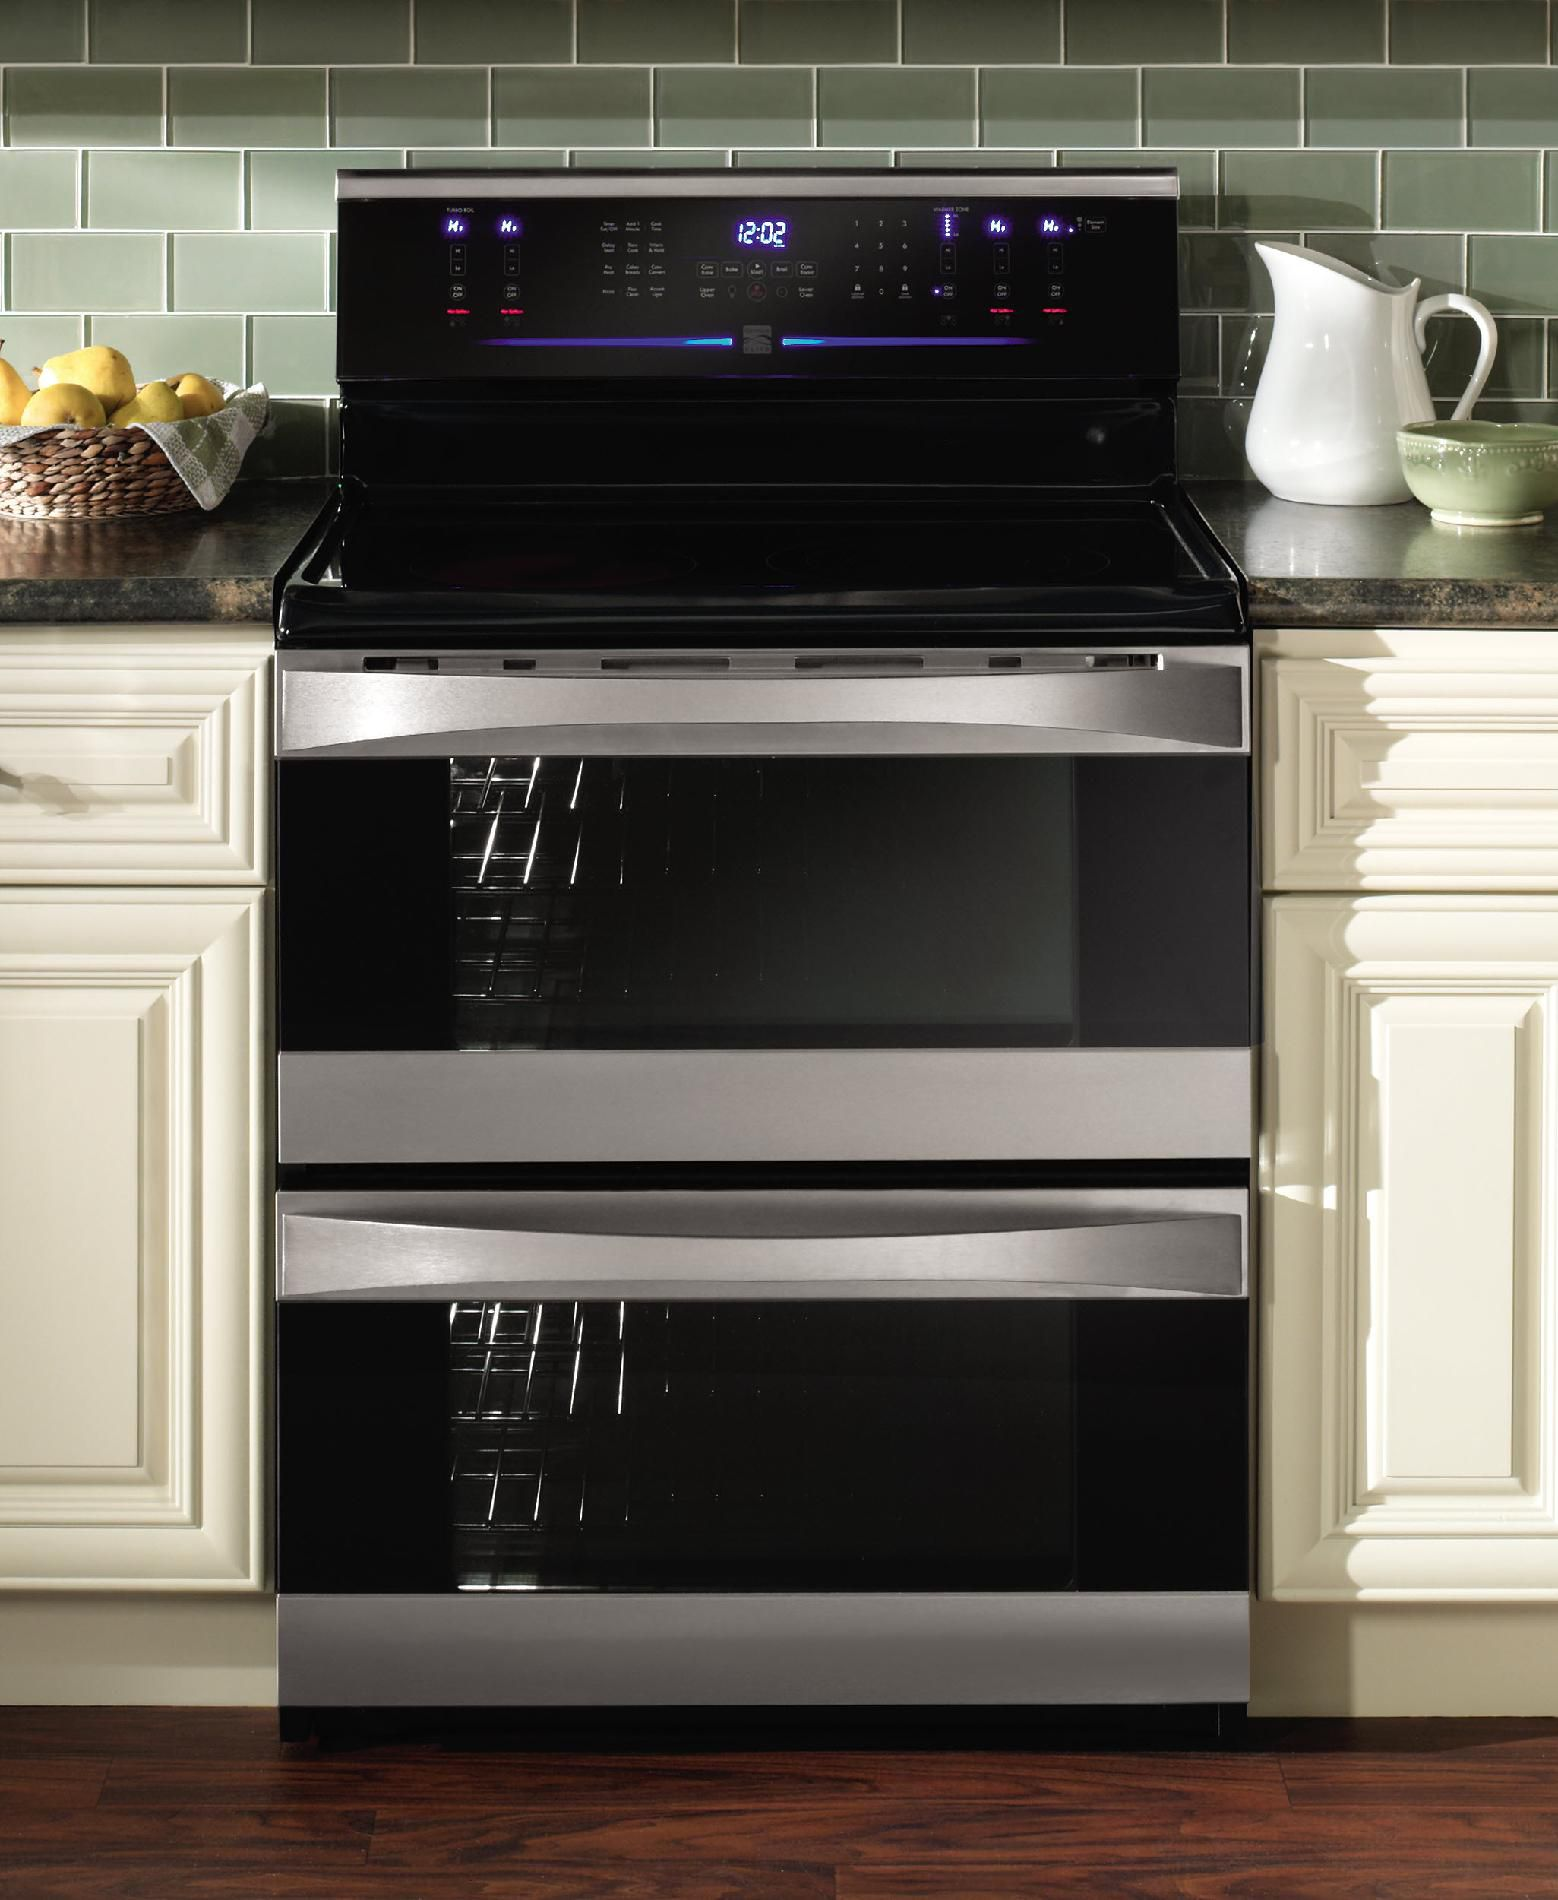 Kenmore Elite 7.0 cu. ft. Double-Oven Electric Range - Stainless Steel